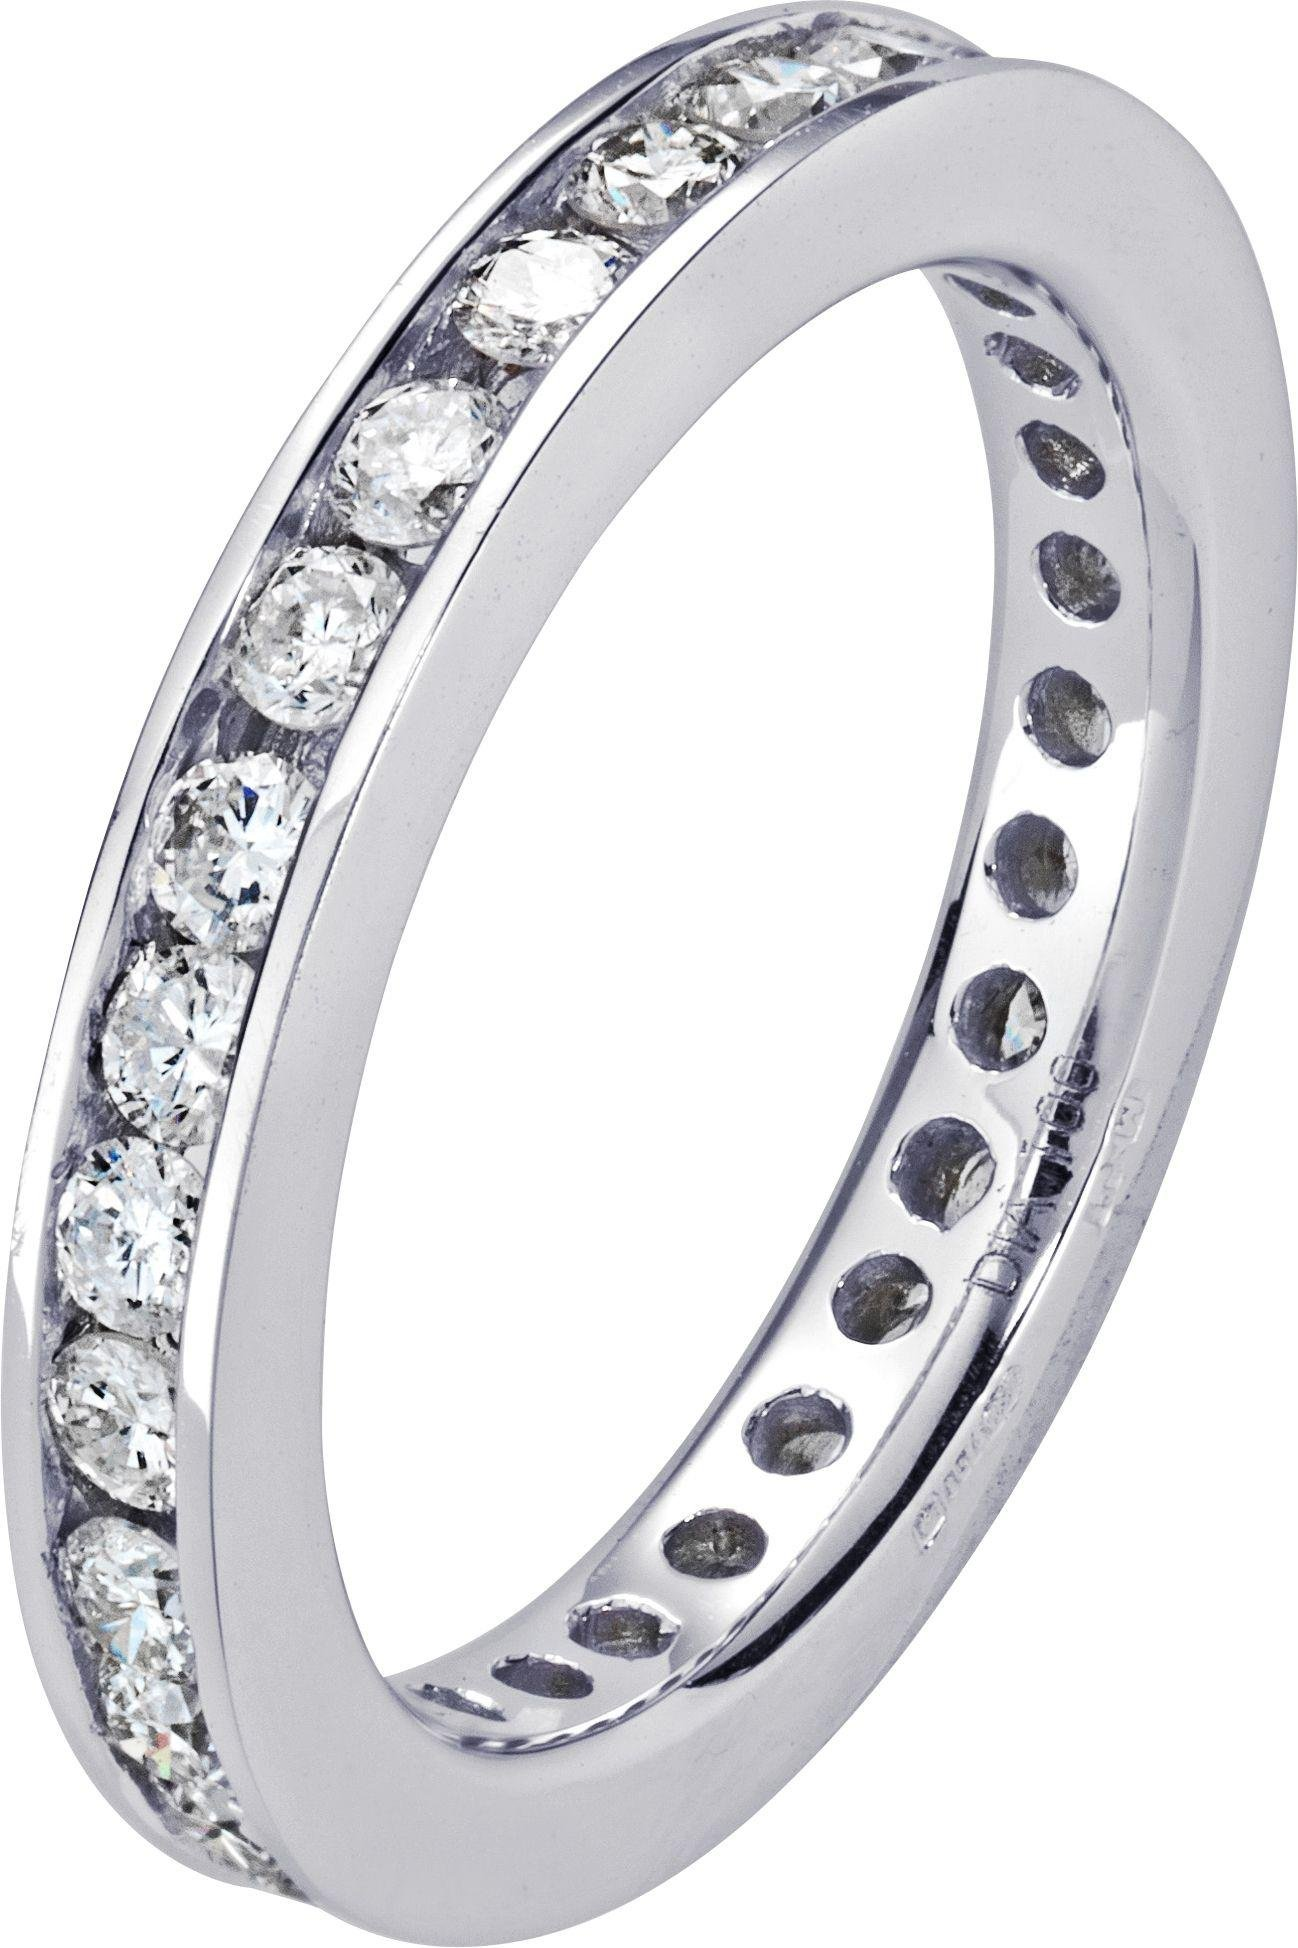 Everlasting Love Made For You - 18 Carat White Gold 1 Carat Diamond - Eternity Ring- M